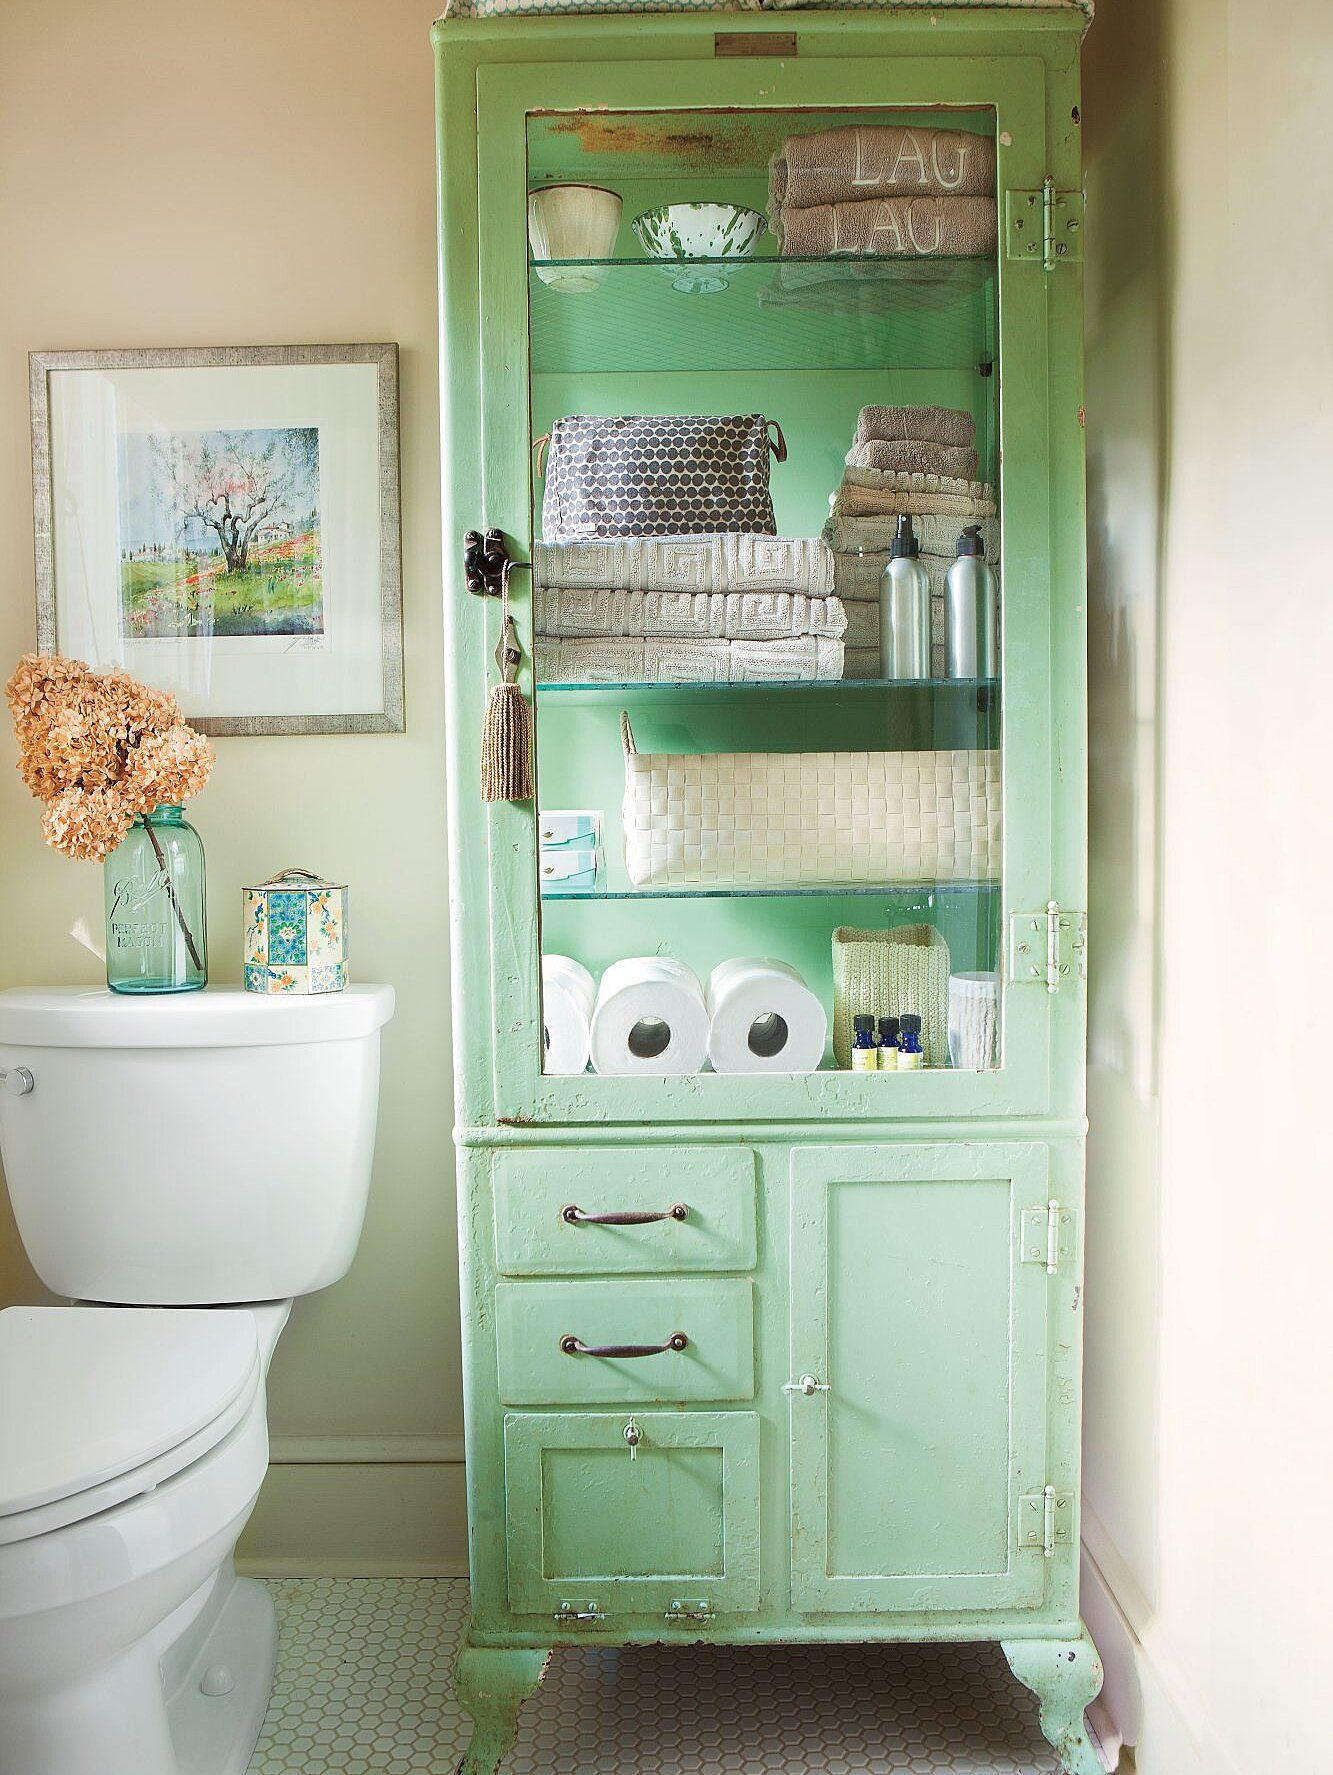 Bathrooms Made For Relaxing Trendy Bathroom Chic Bathrooms Shabby Chic Bathroom [ 1775 x 1333 Pixel ]